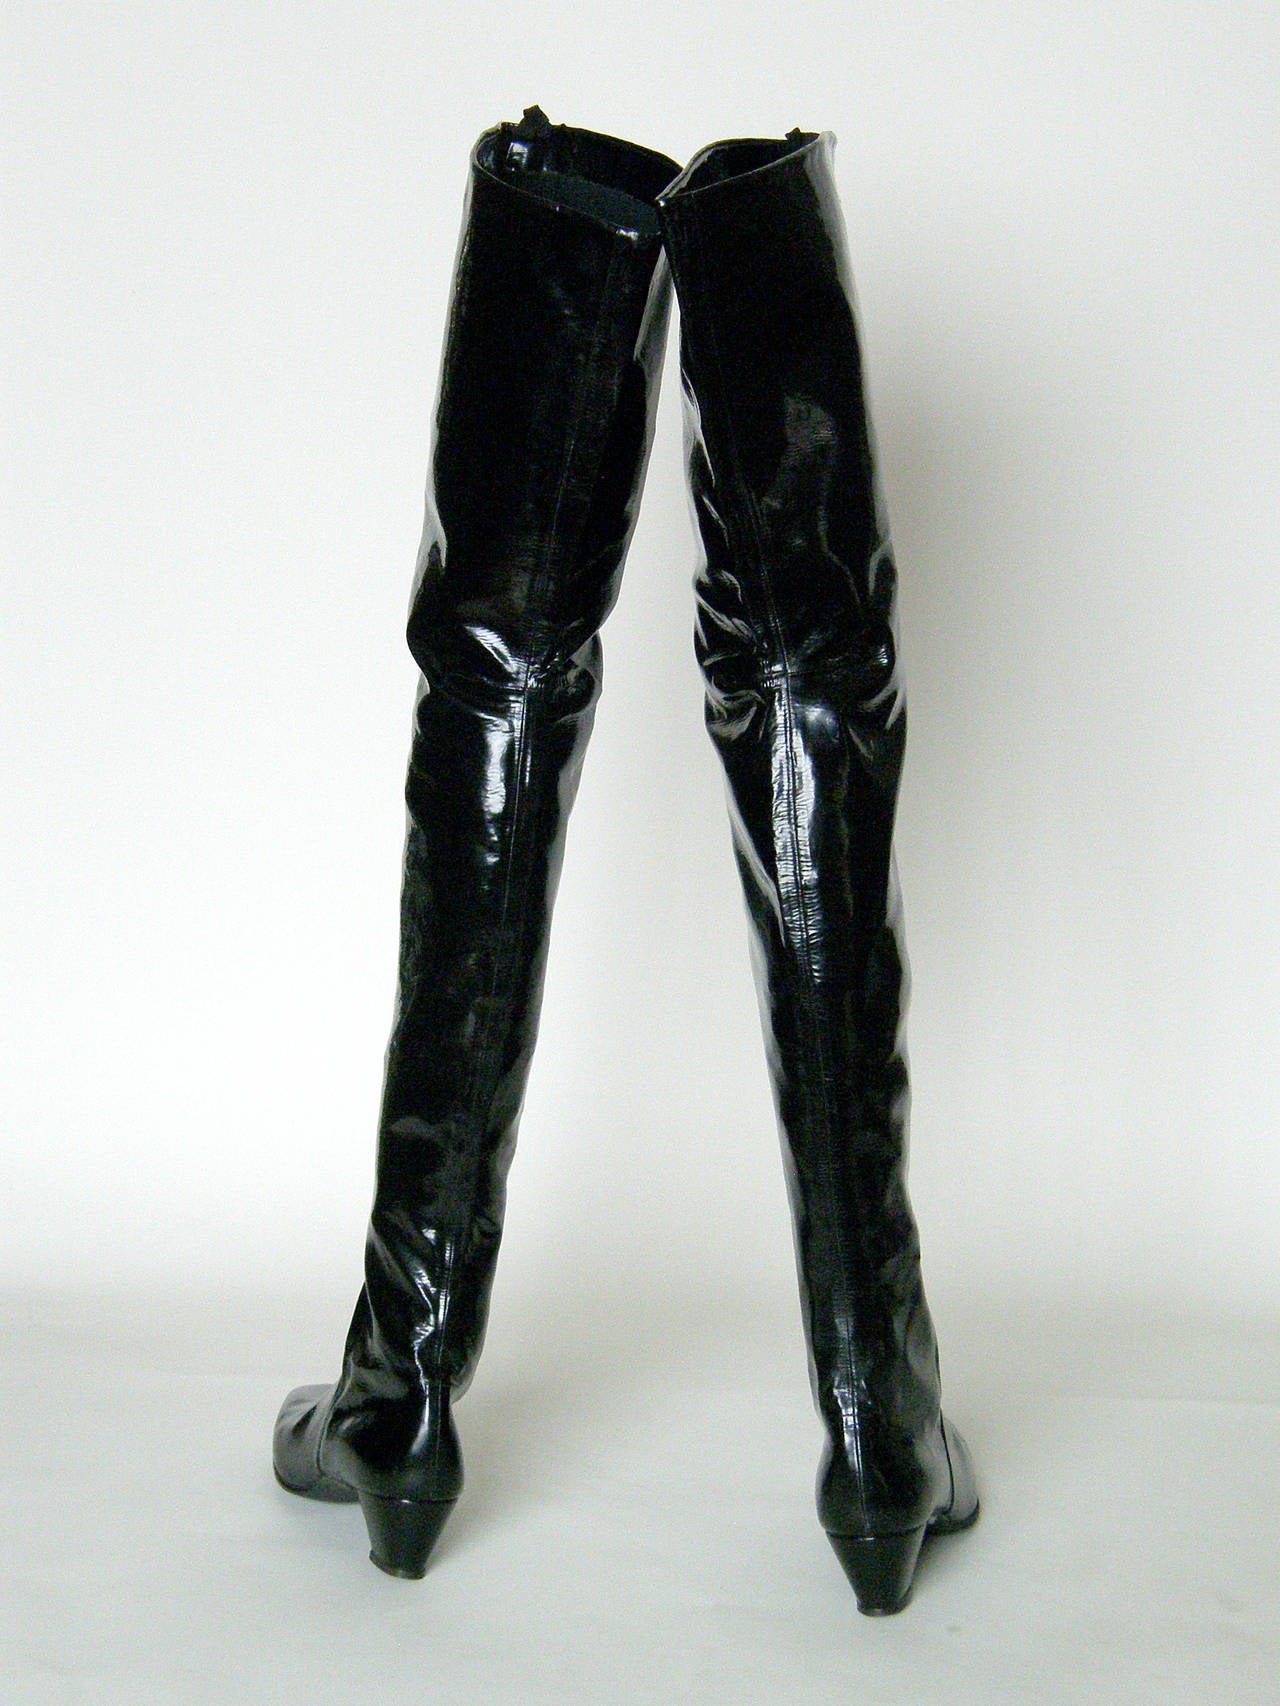 Vinyl Thigh High Boots - Boot Hto